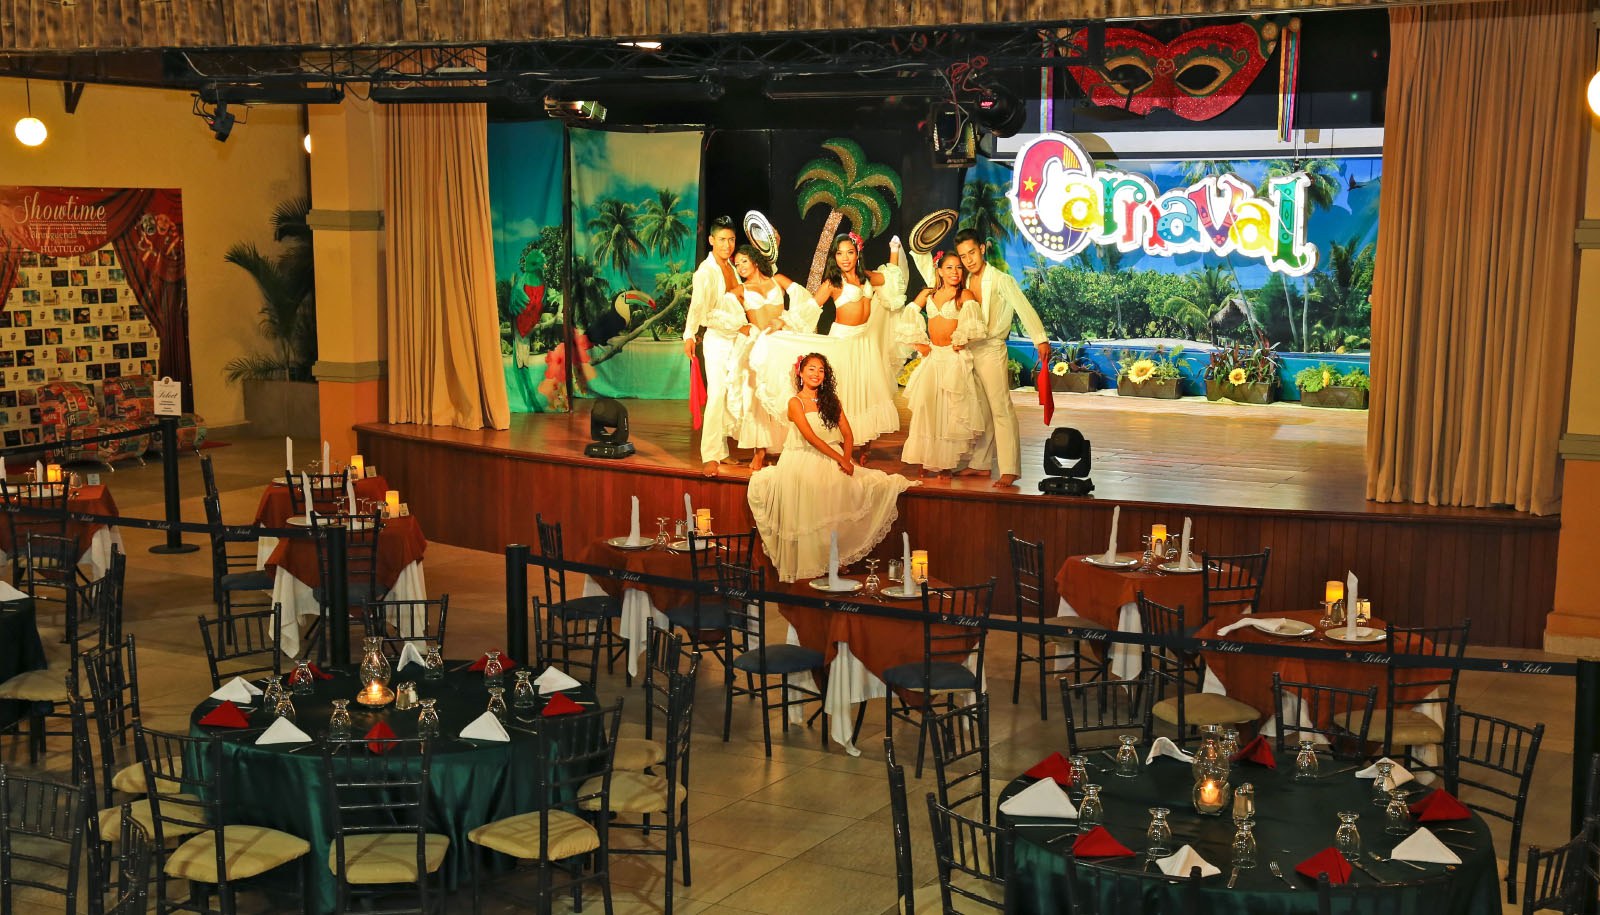 hotel binniguenda huatulco dinner show event restaurant buffet all inclusive